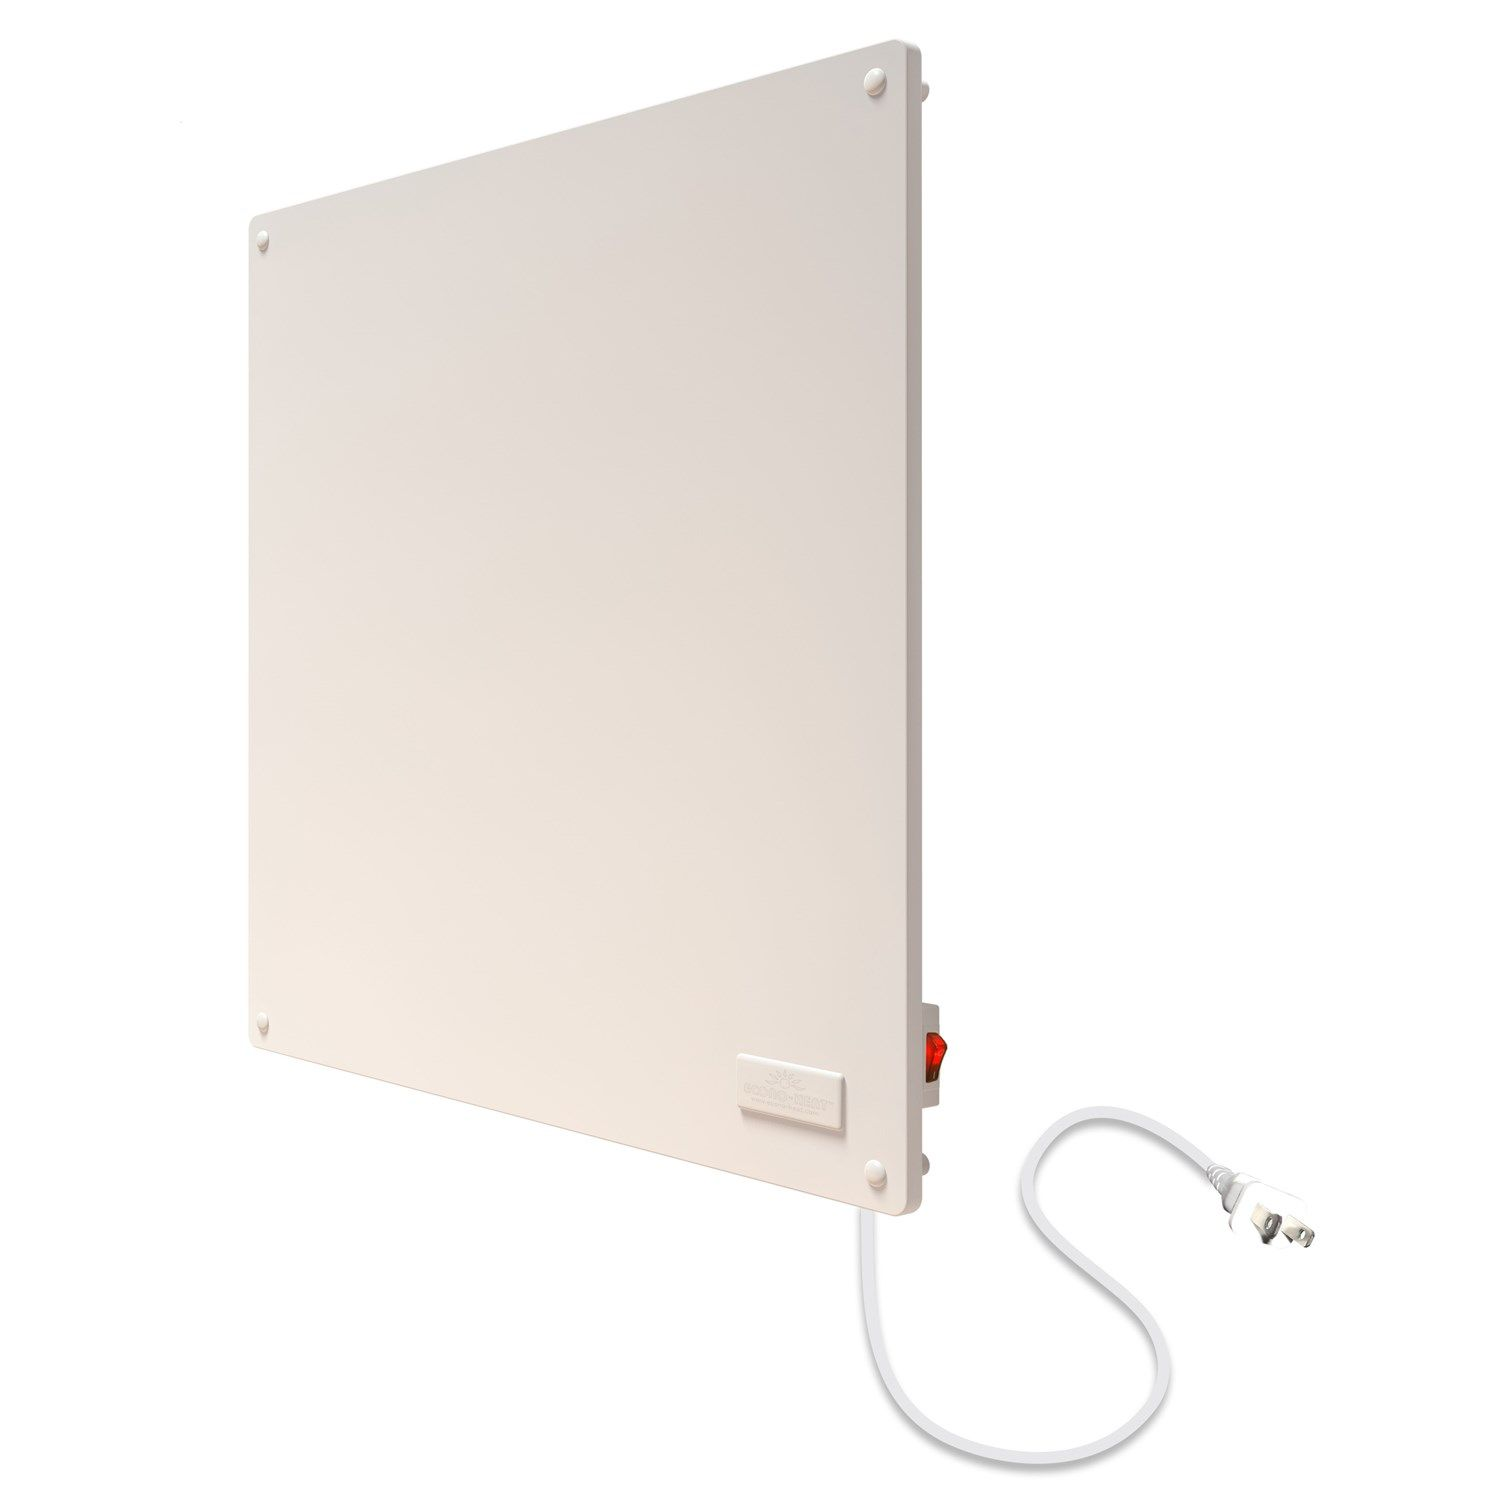 Econo Heat 603 Electric Wall Panel Convection Space Heater